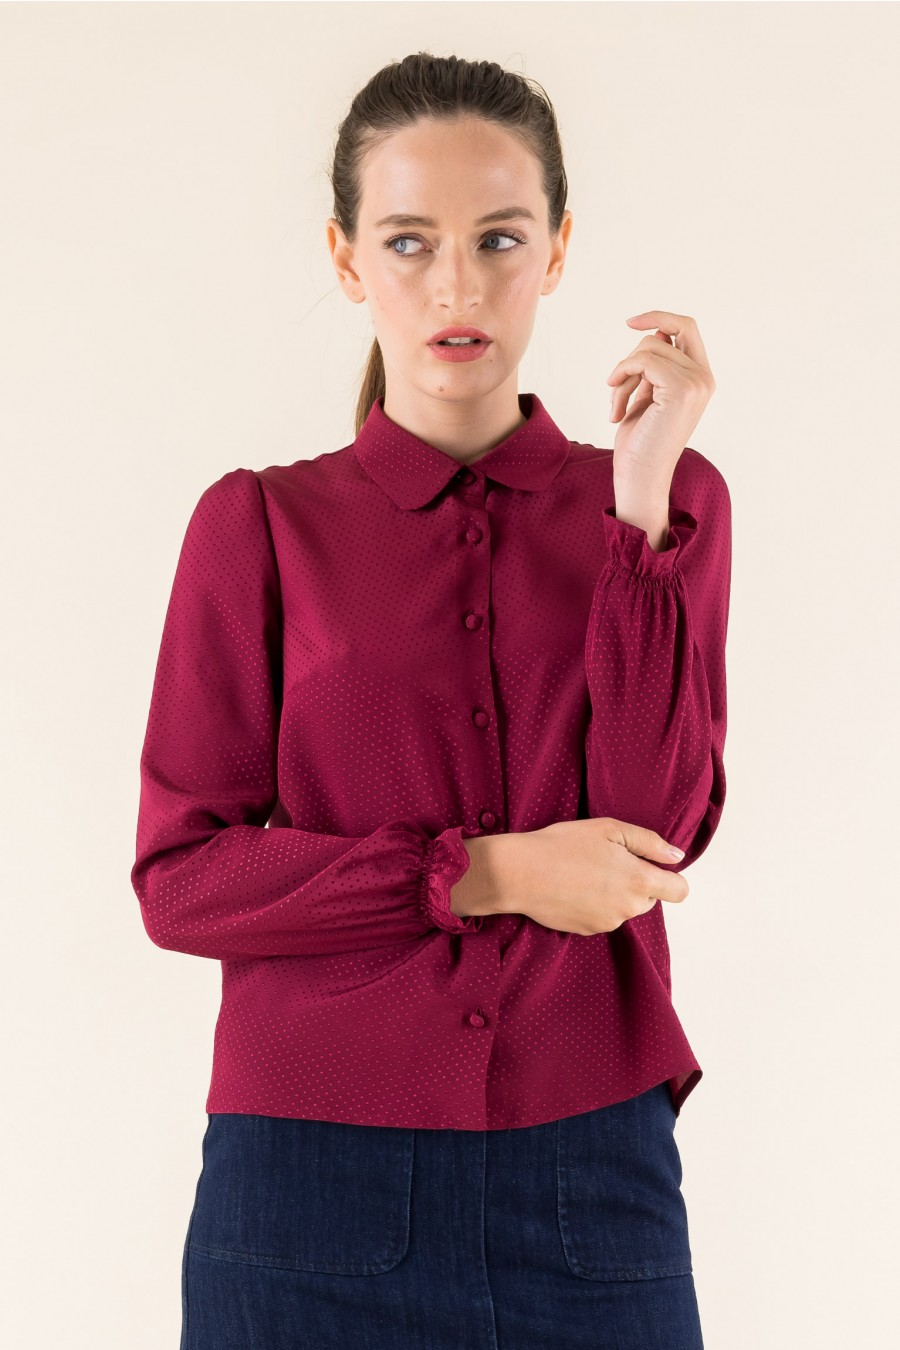 Jacquard red shirt